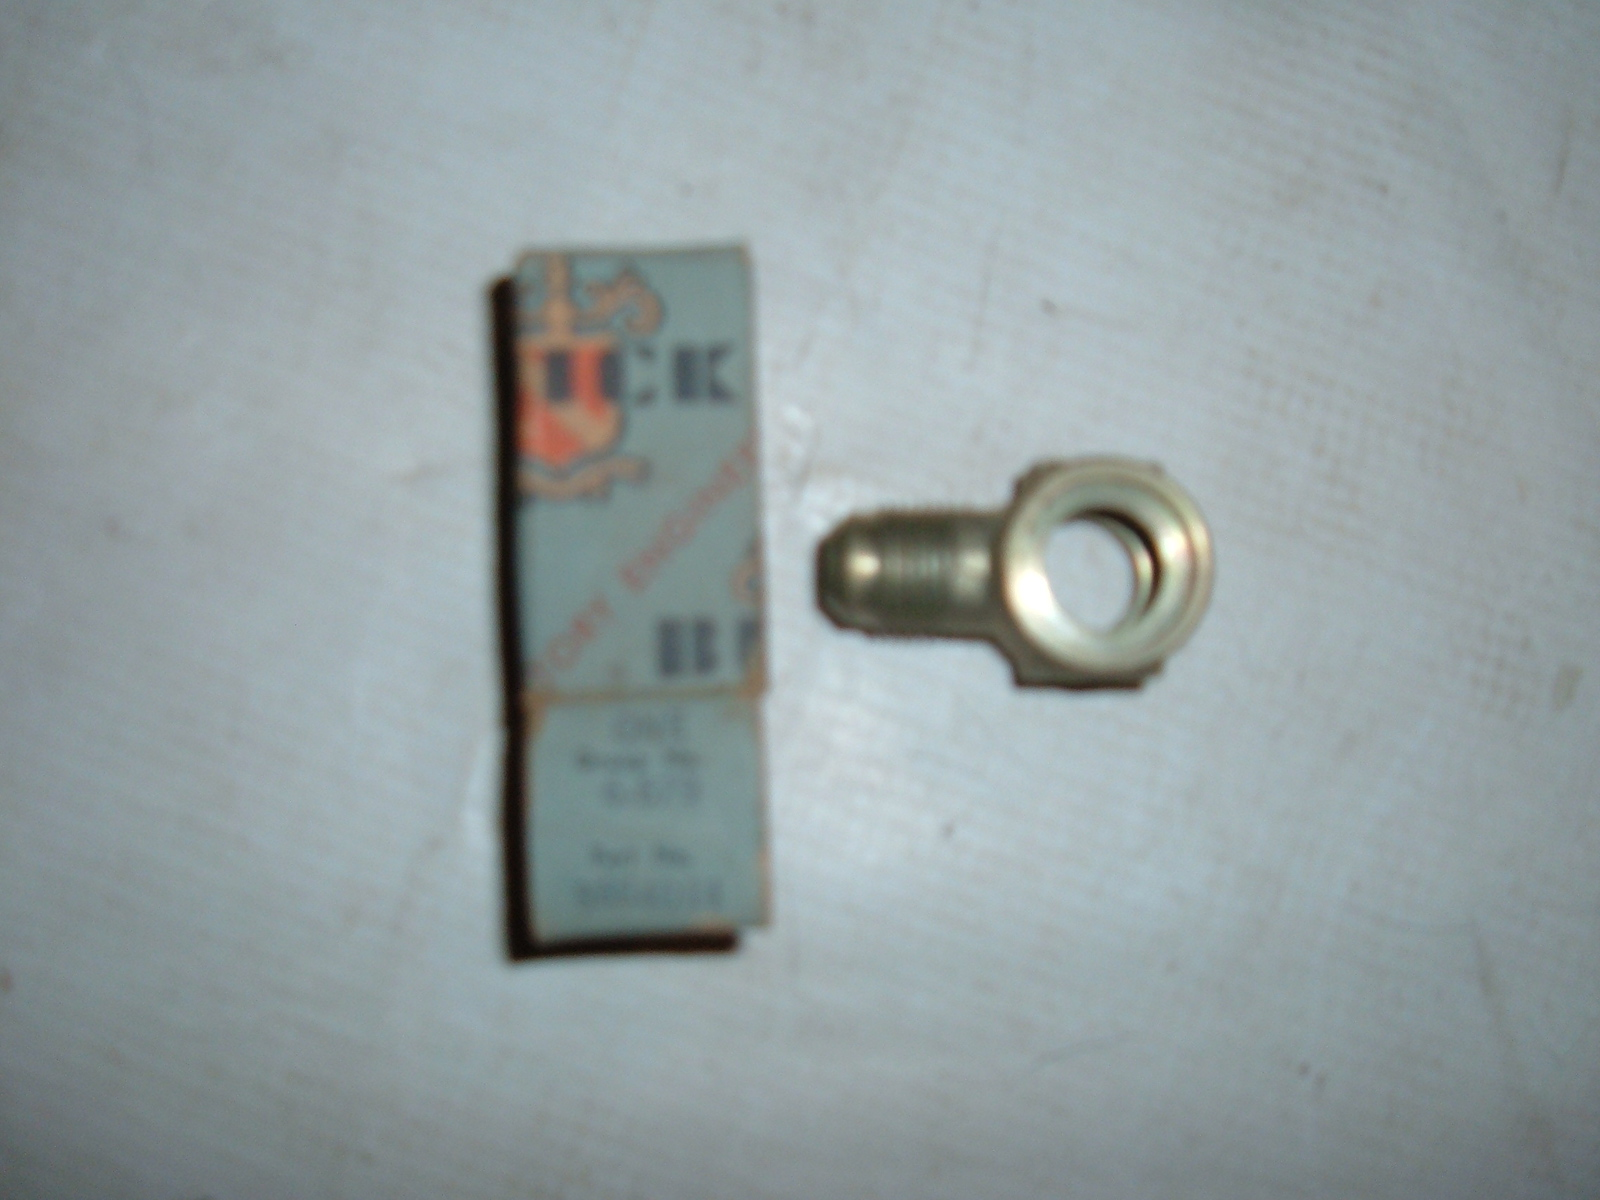 1952 buick power steering elbow fitting nos gm 5664014 (z 5664014)